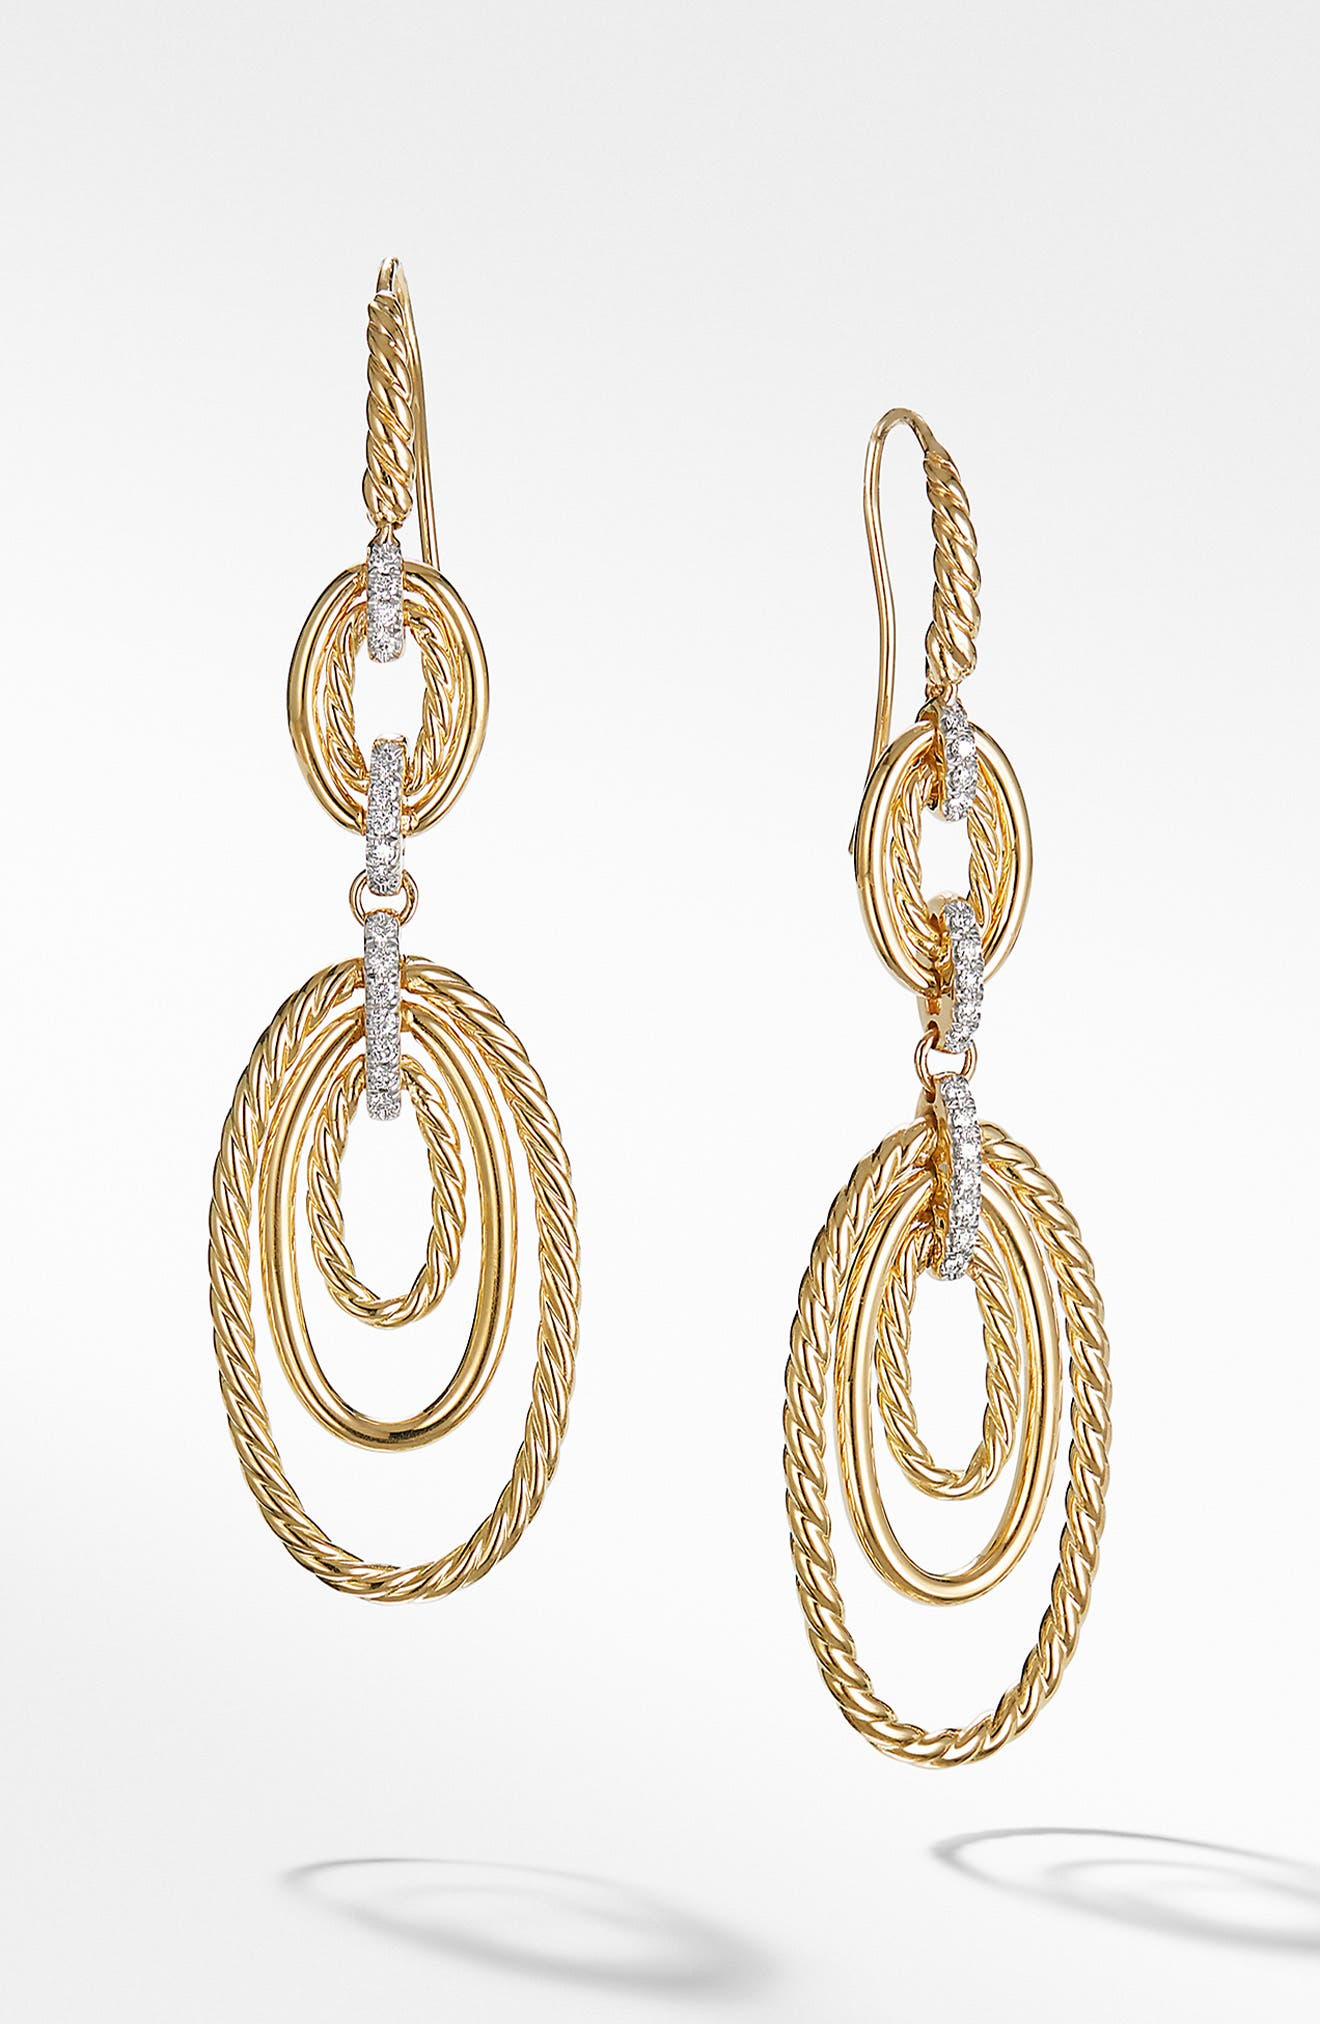 Continuance Drop Earrings with Diamonds in 18K Yellow Gold,                             Main thumbnail 1, color,                             GOLD/ DIAMOND